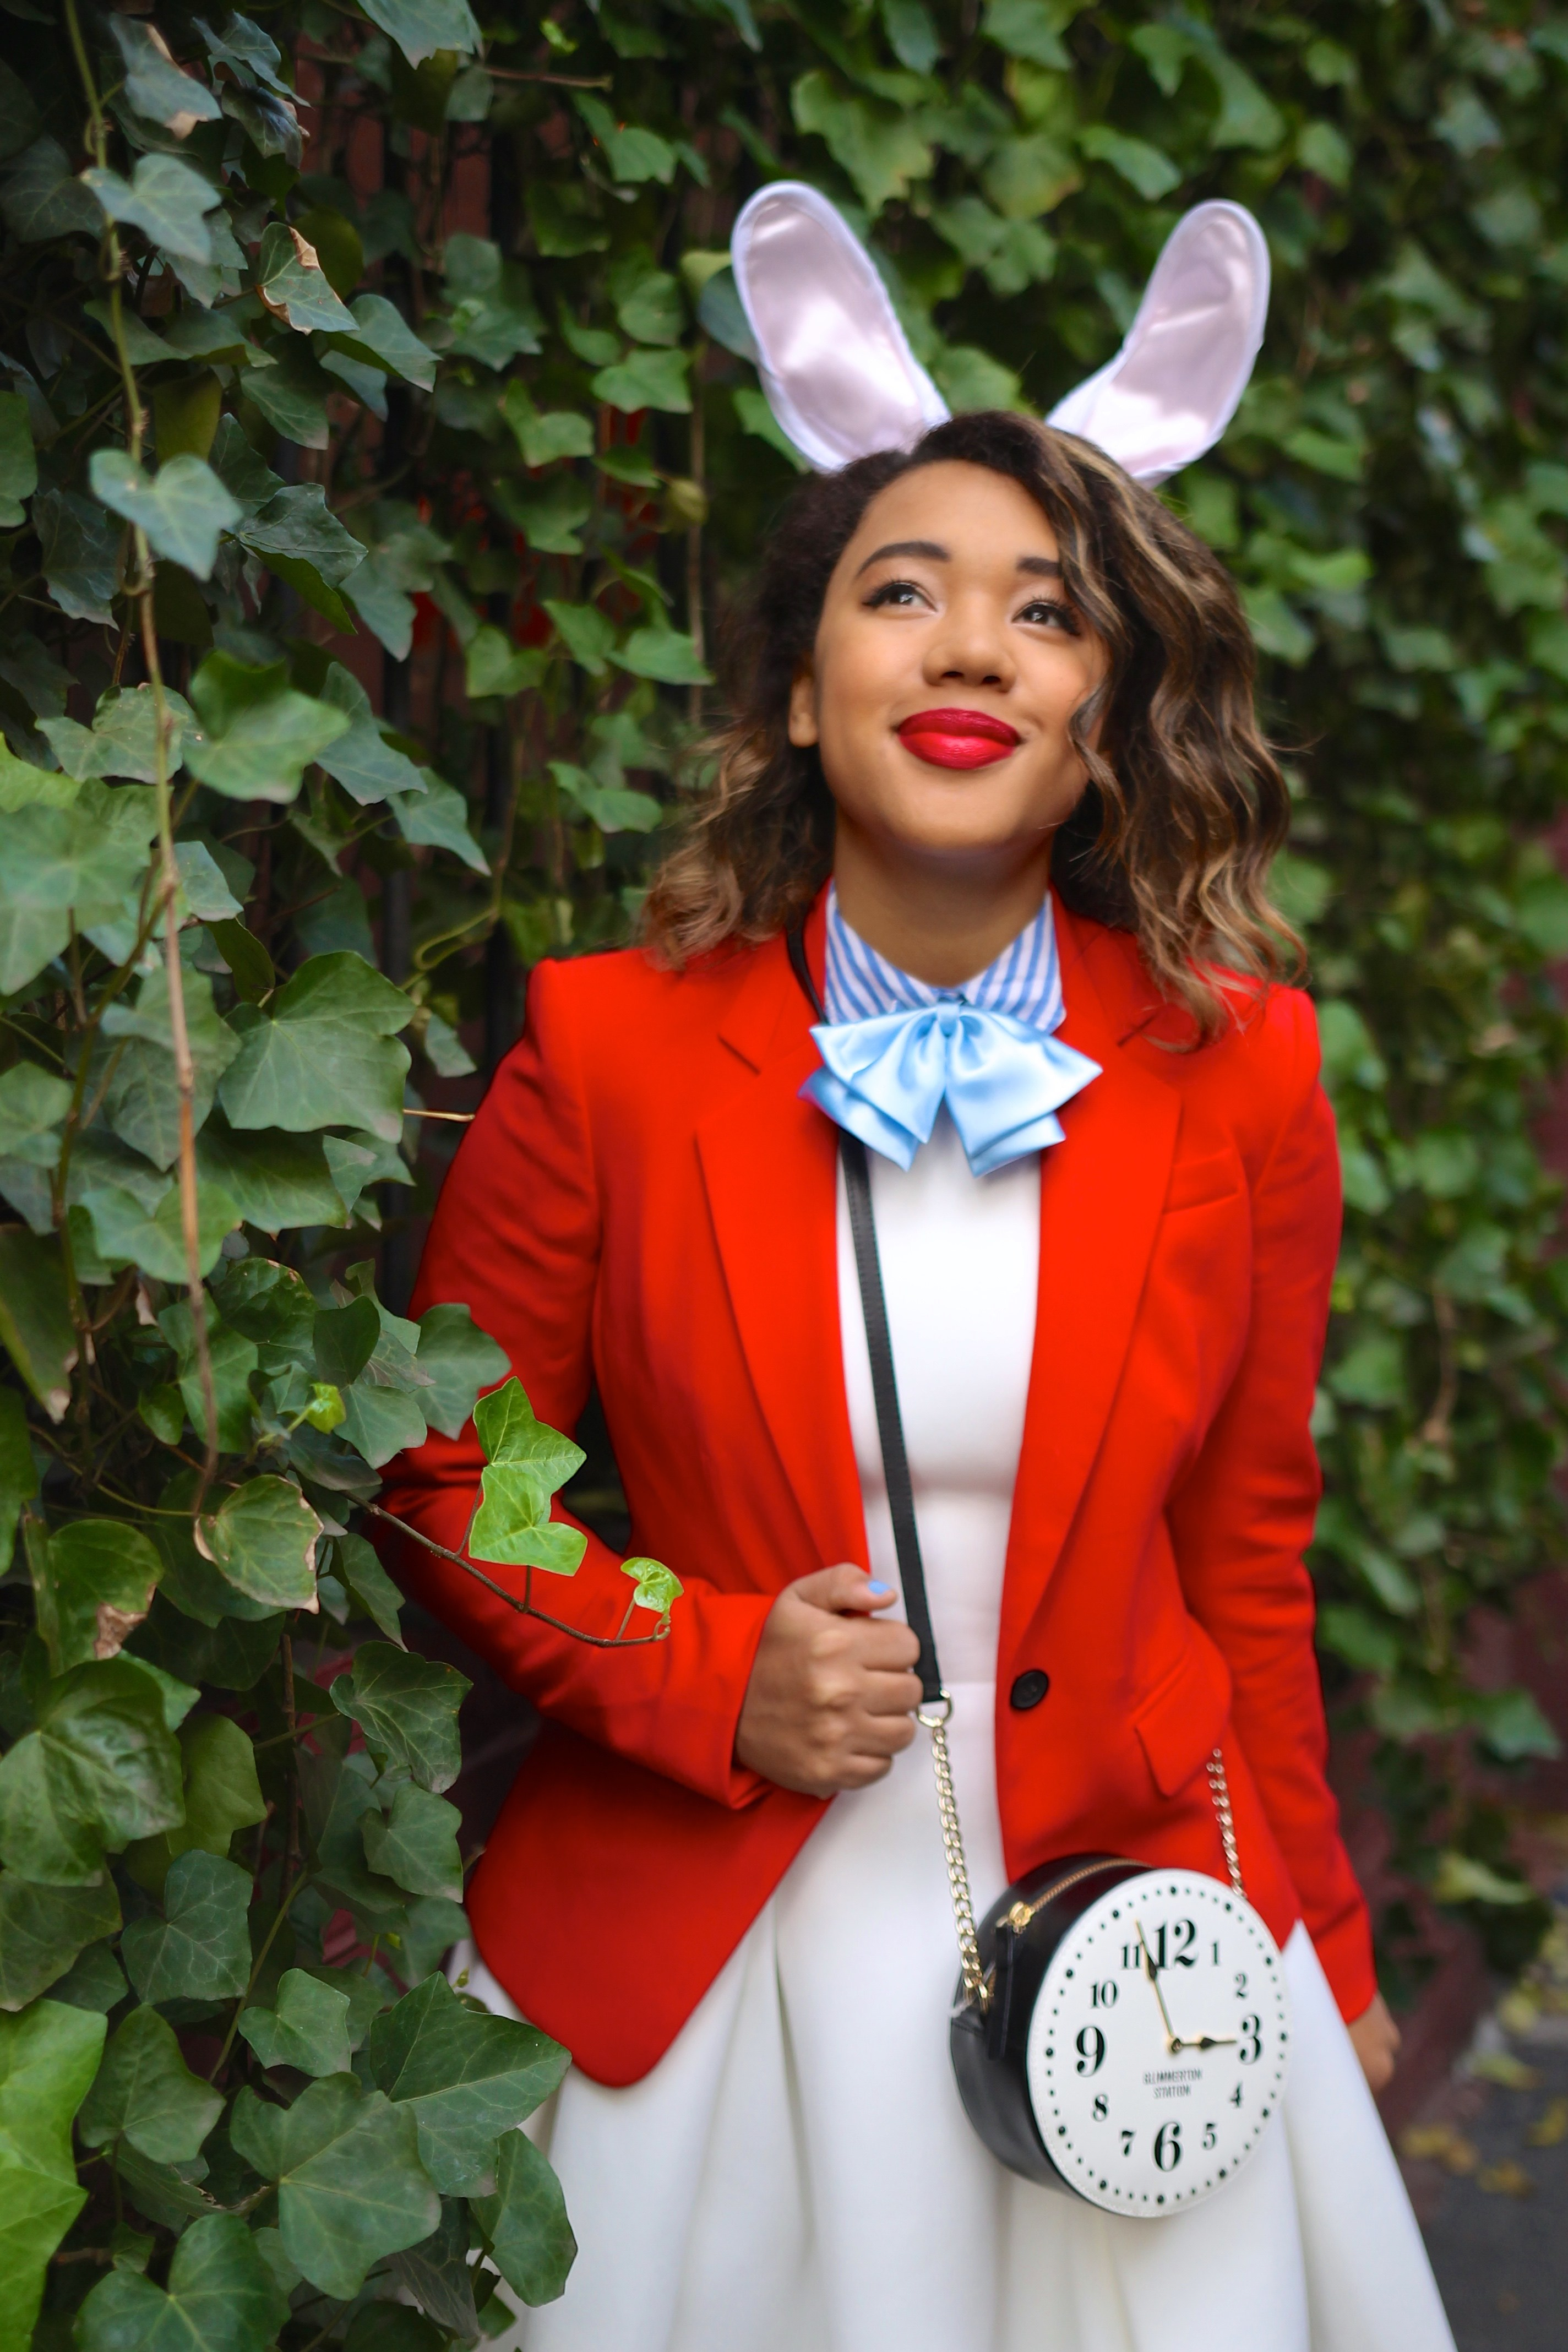 41 Last Minute Diy Halloween Costumes For Teens Diy Projects For Teens